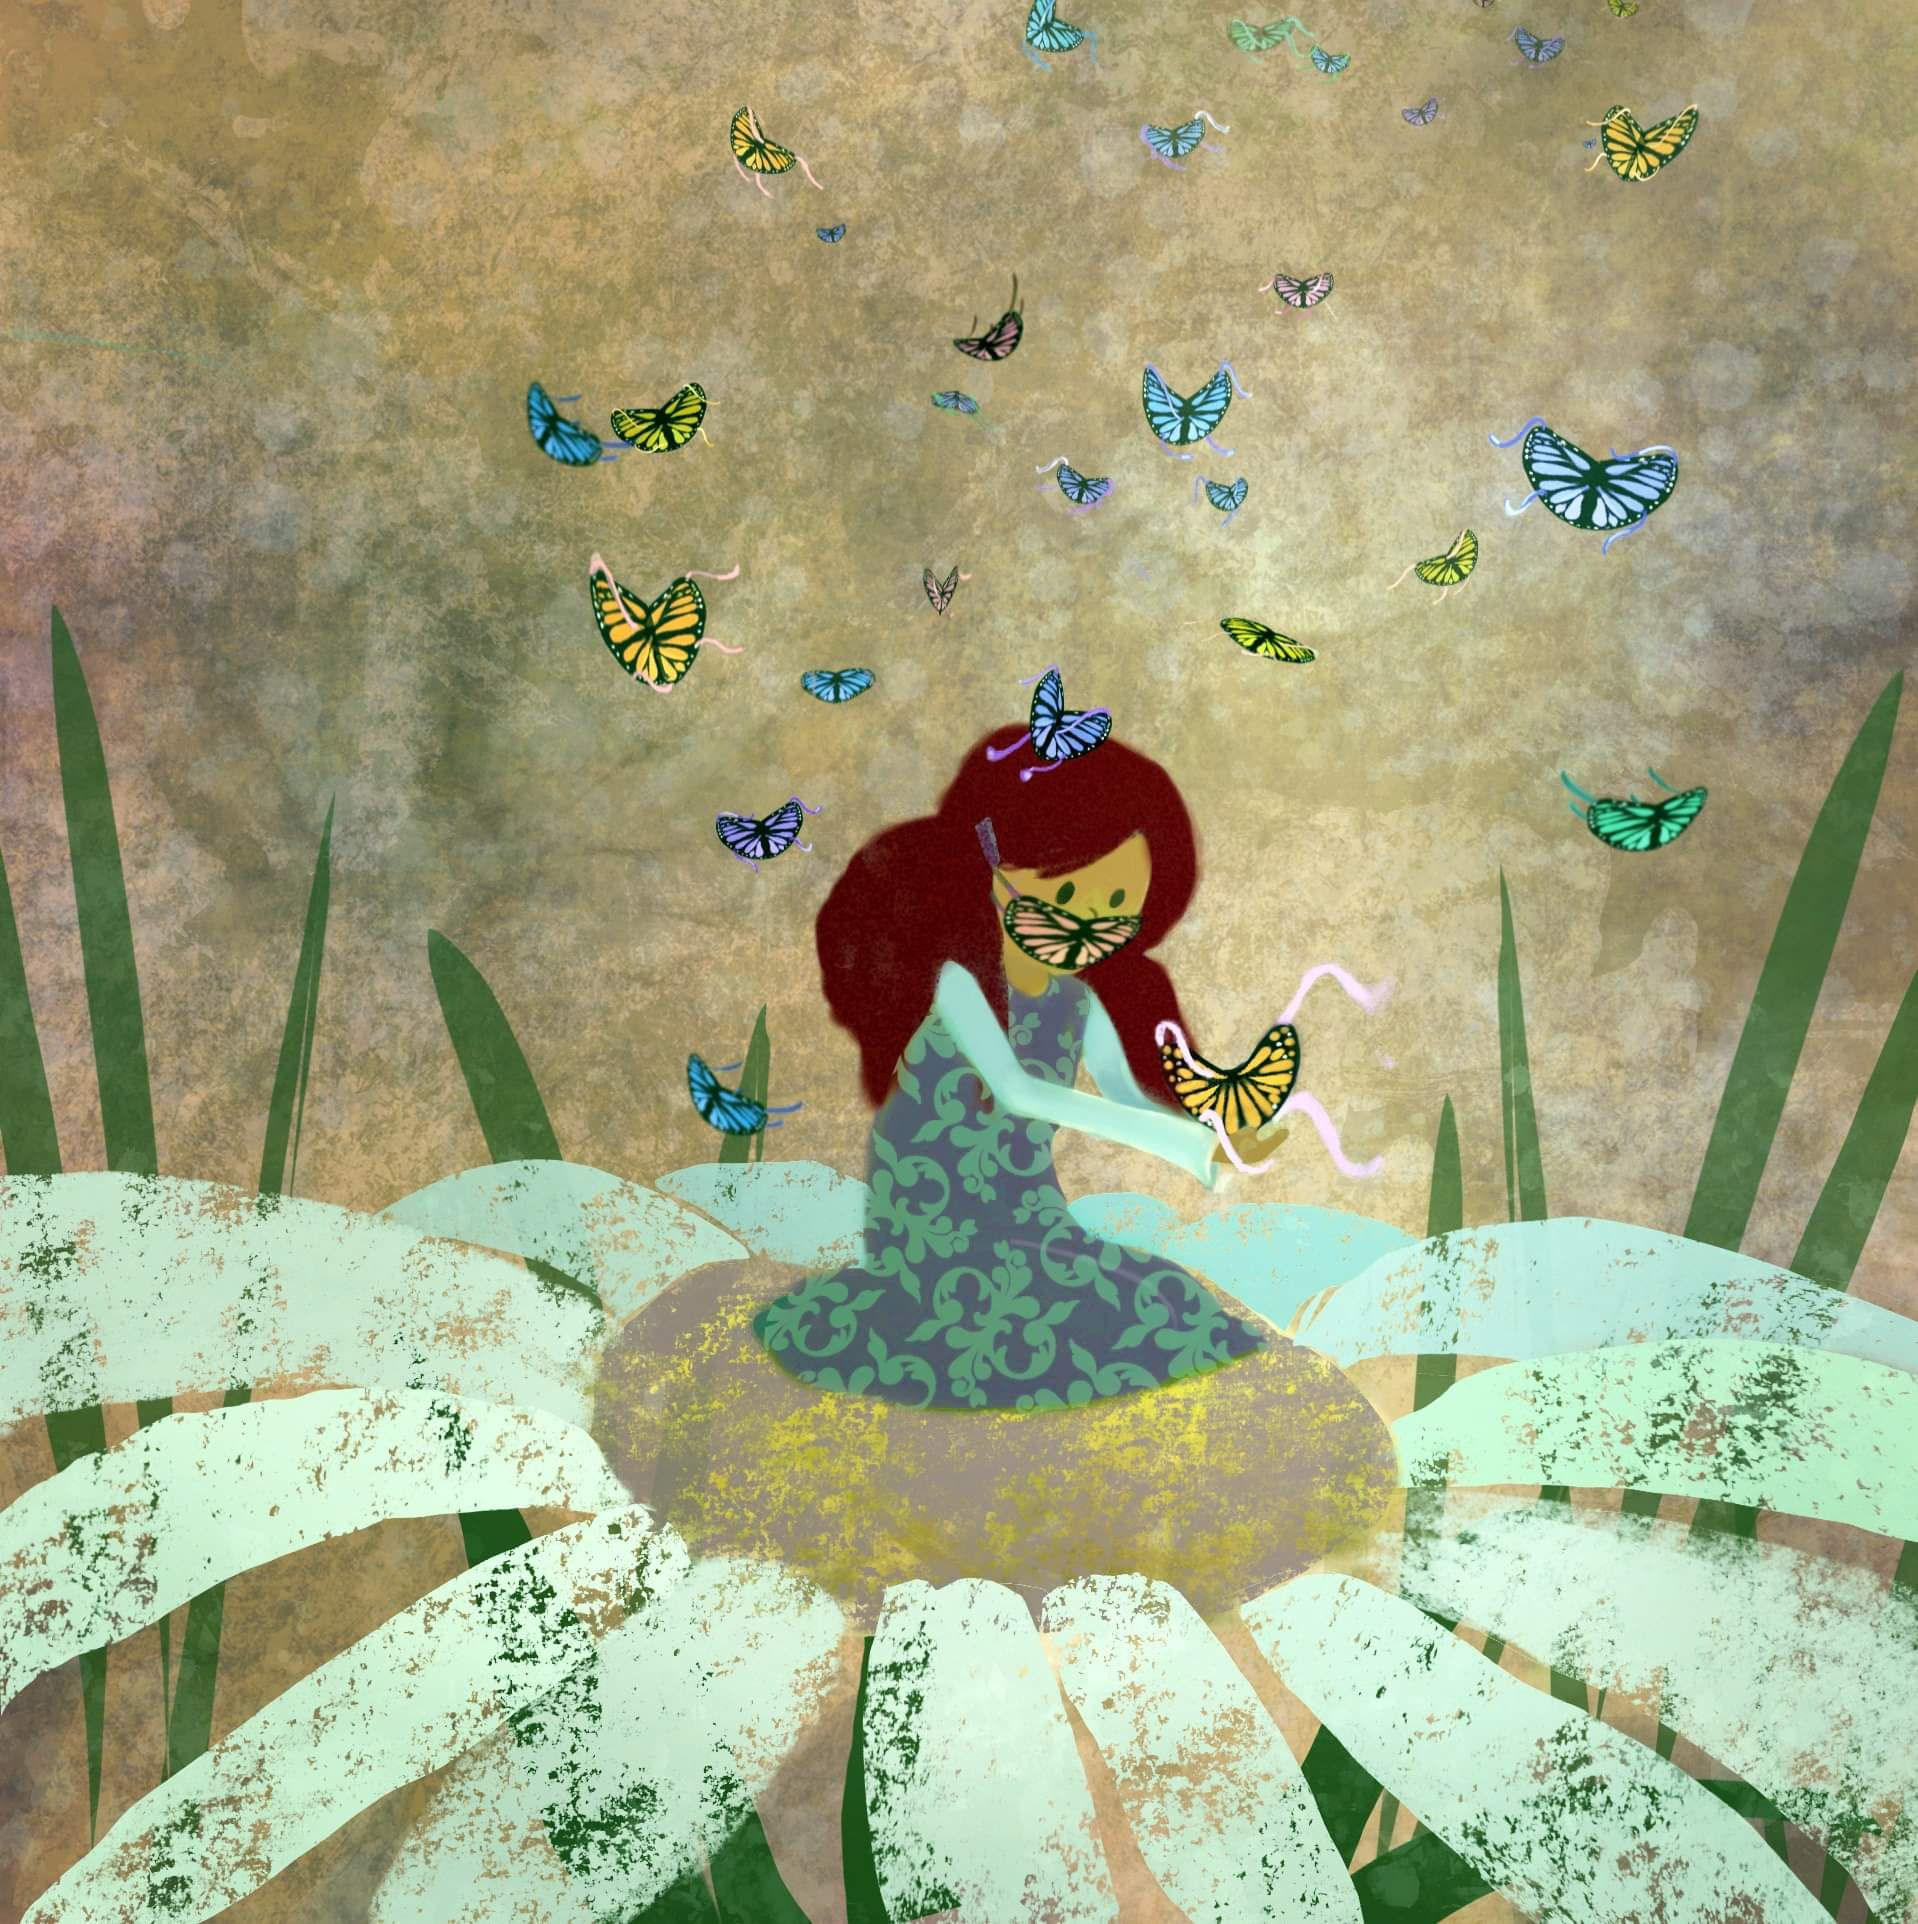 received_3079504028776308.jpeg